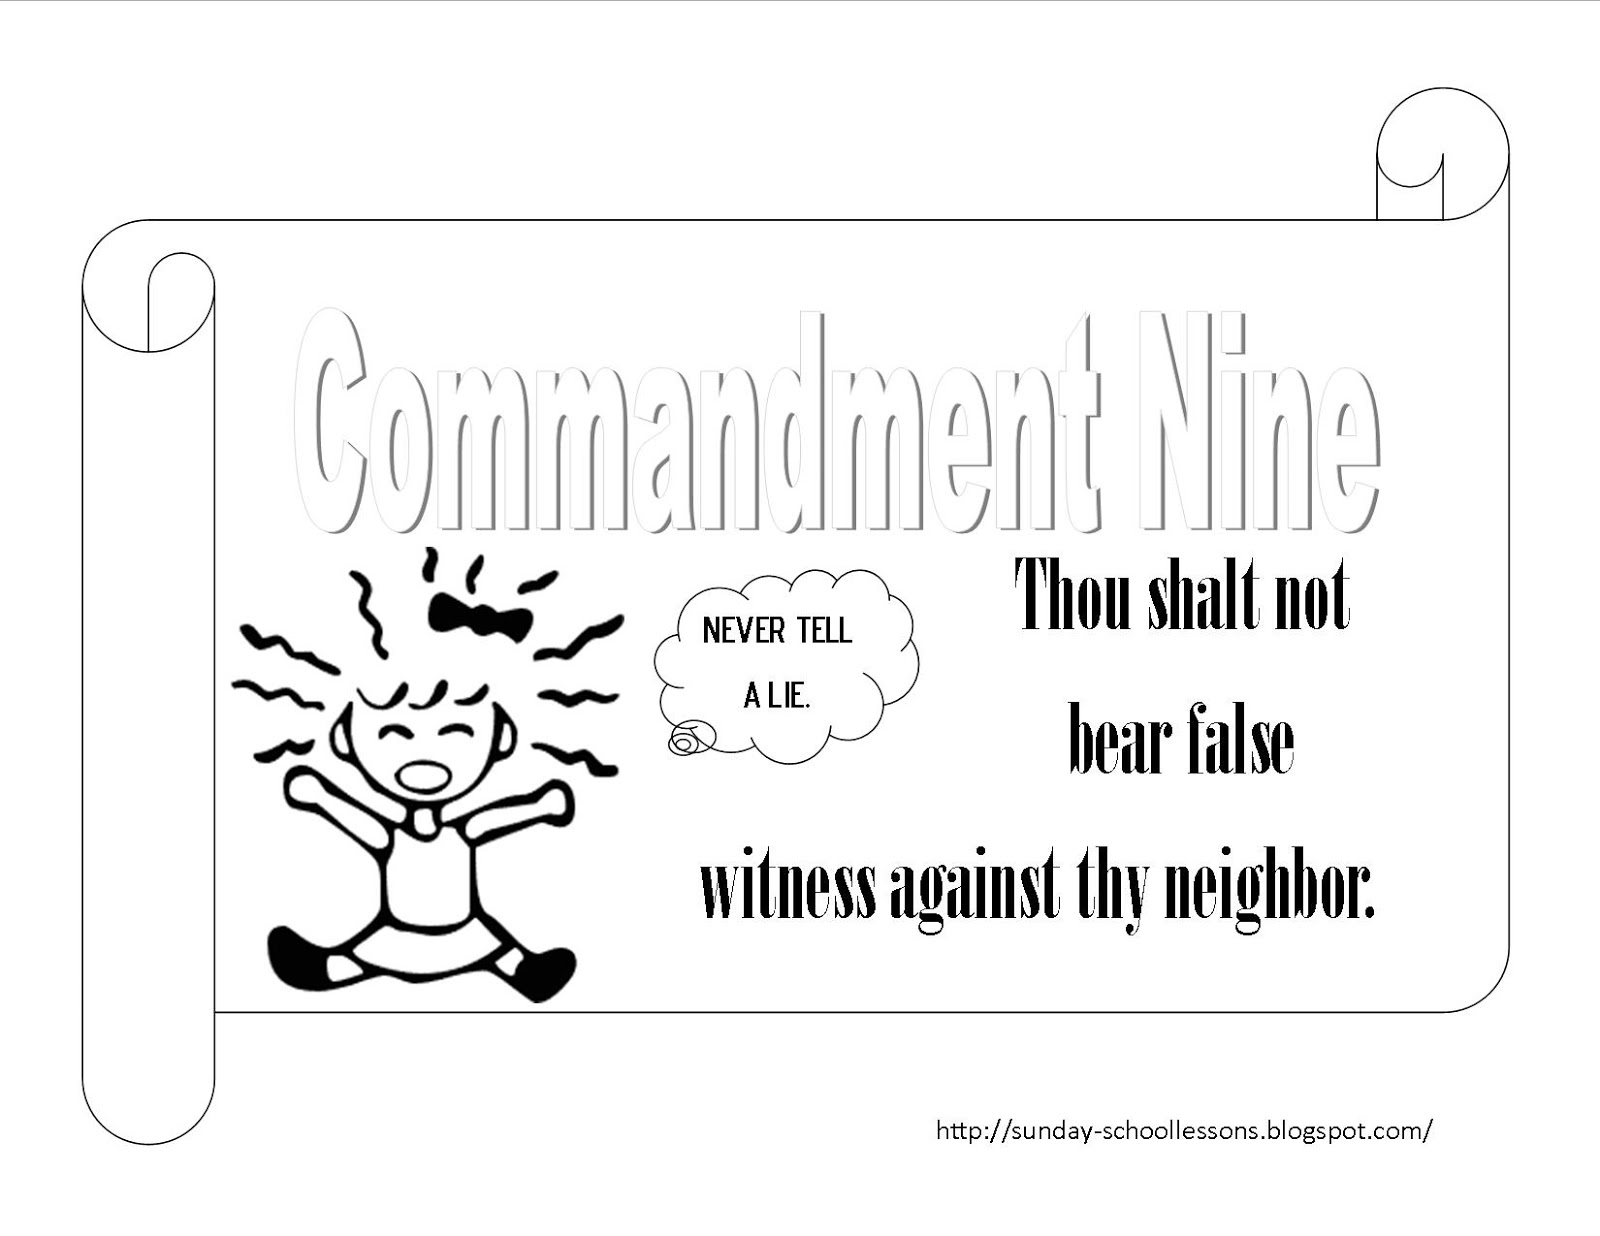 Click the image to see it larger and to print for 1st commandment coloring page